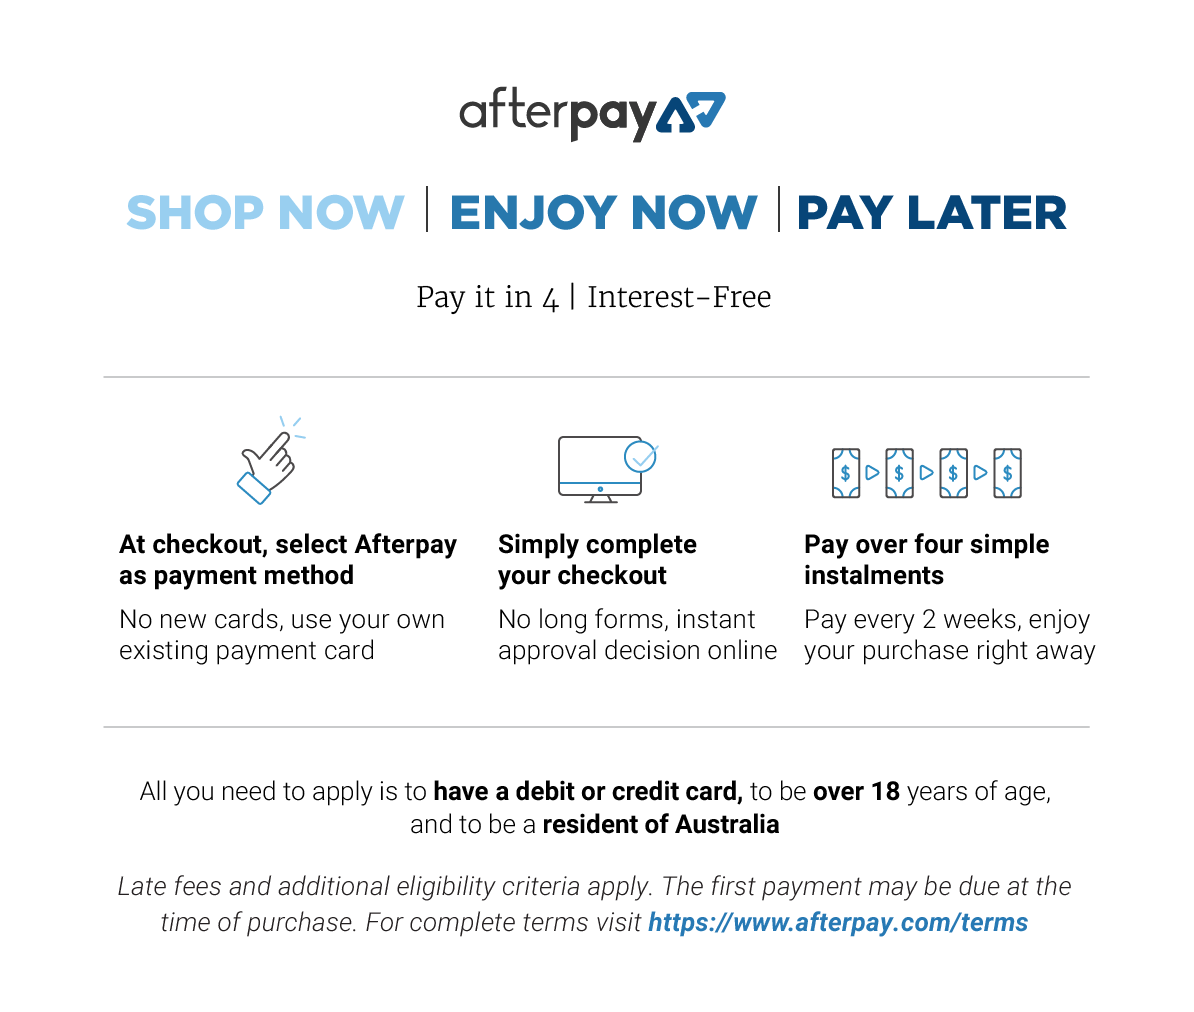 AfterPay Enjoy Now - Pay later